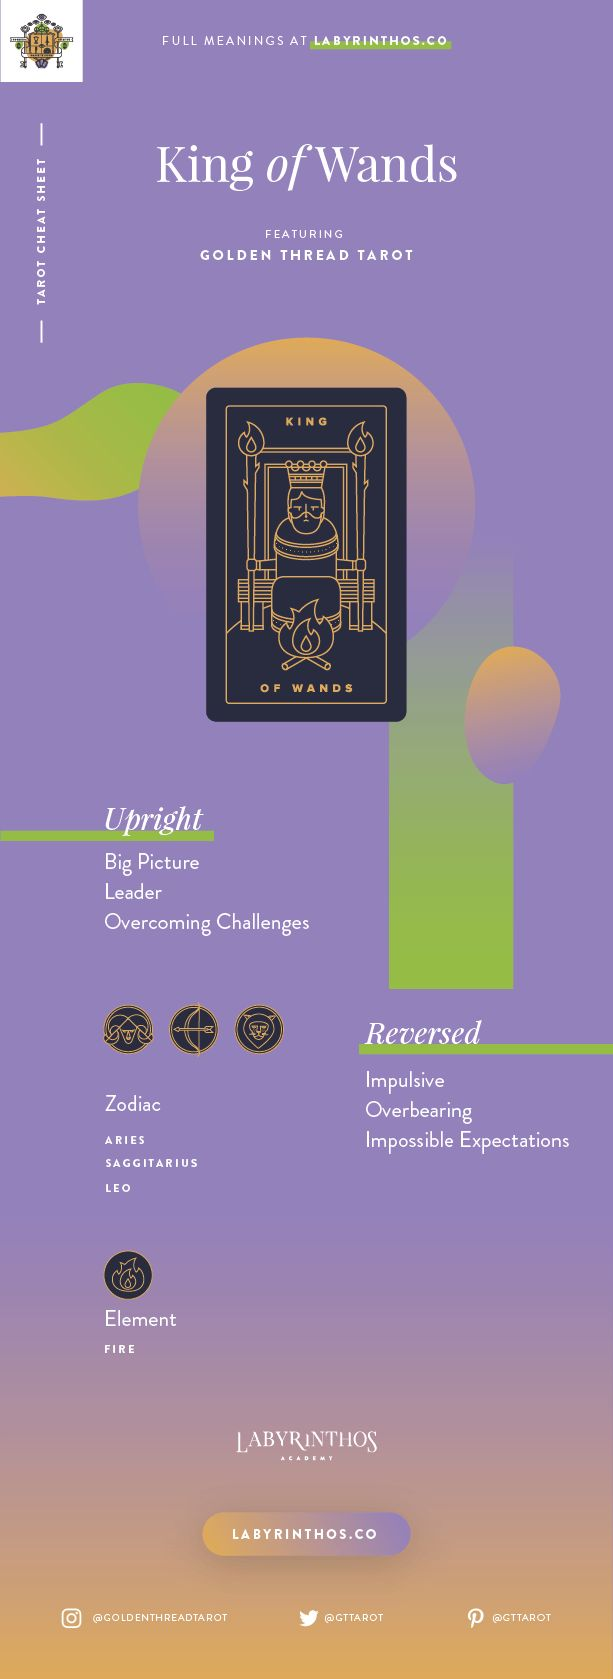 King of Wands Meaning - Tarot Card Meanings Cheat Sheet. Art from Golden Thread Tarot.